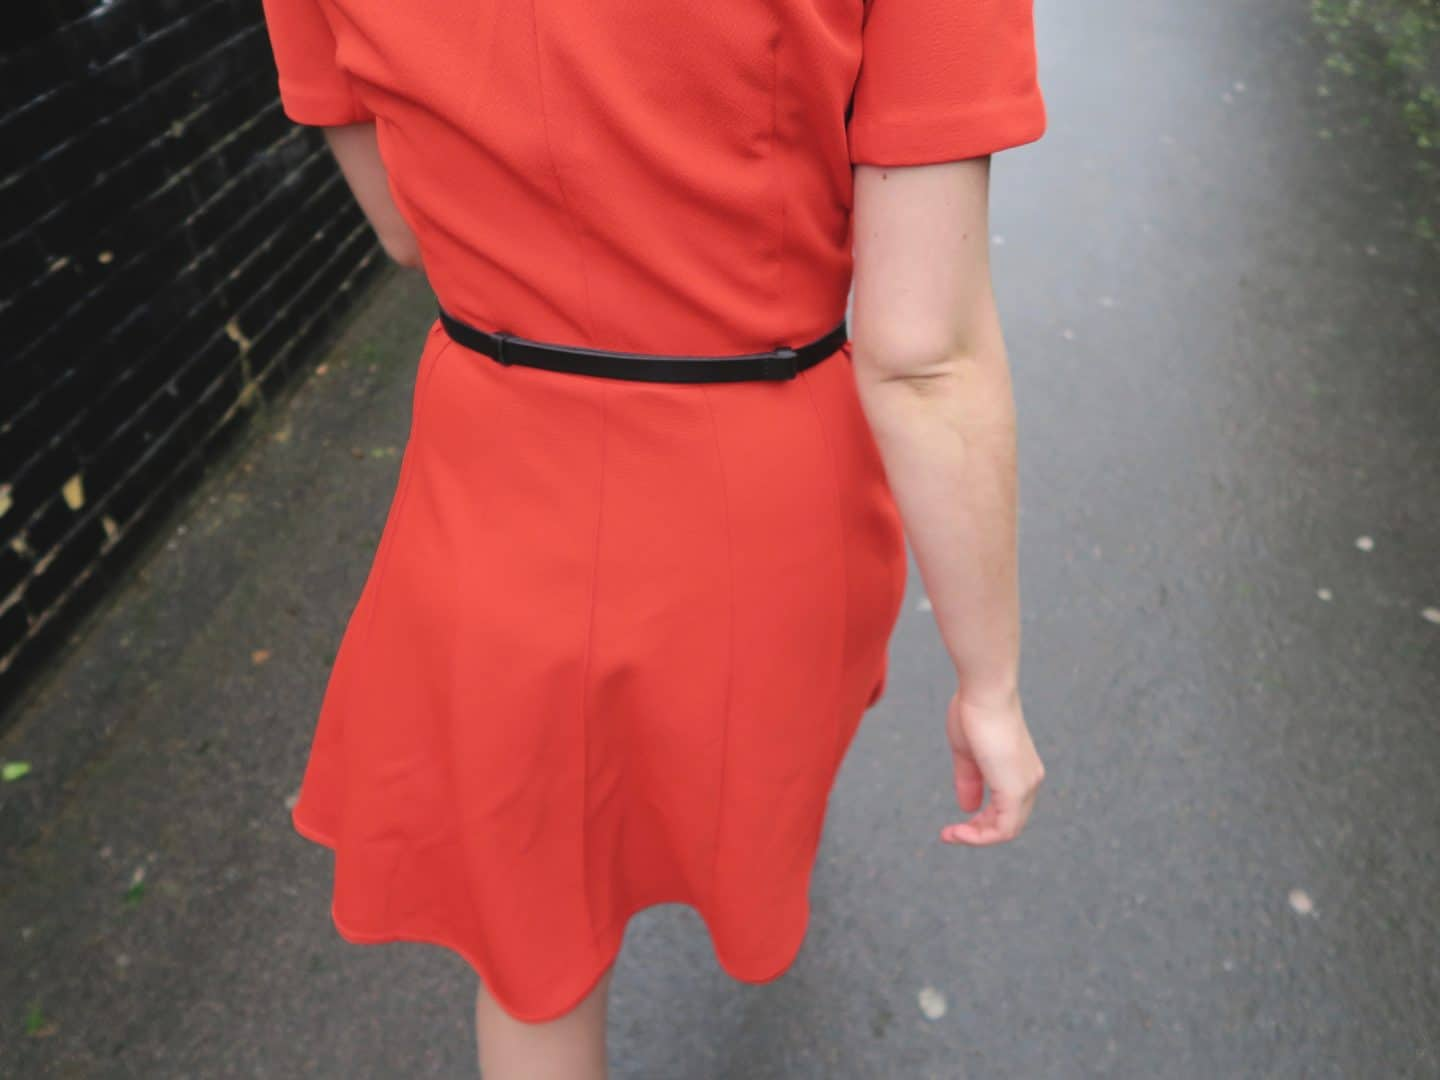 Styling A Red Dress | Curiously Conscious